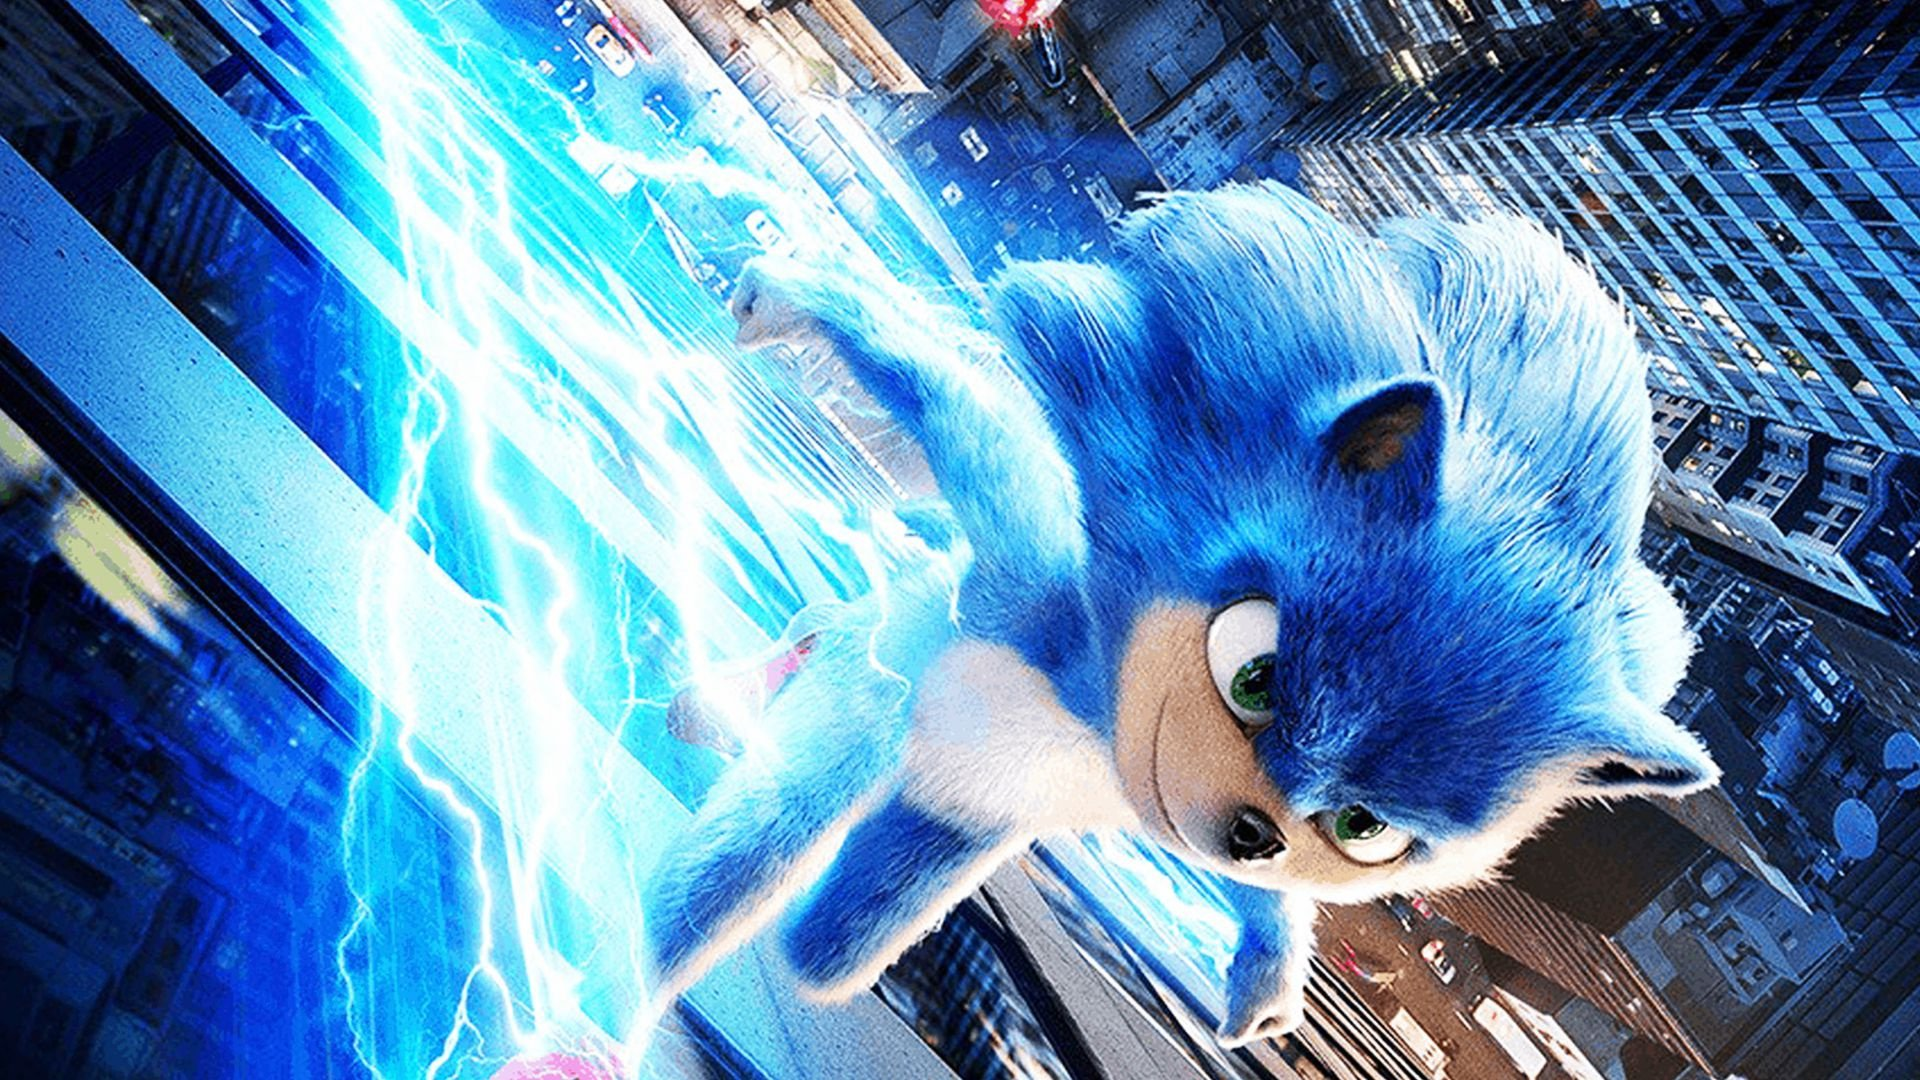 Rumour Is This The Sonic The Hedgehog Movie S New Design Push Square